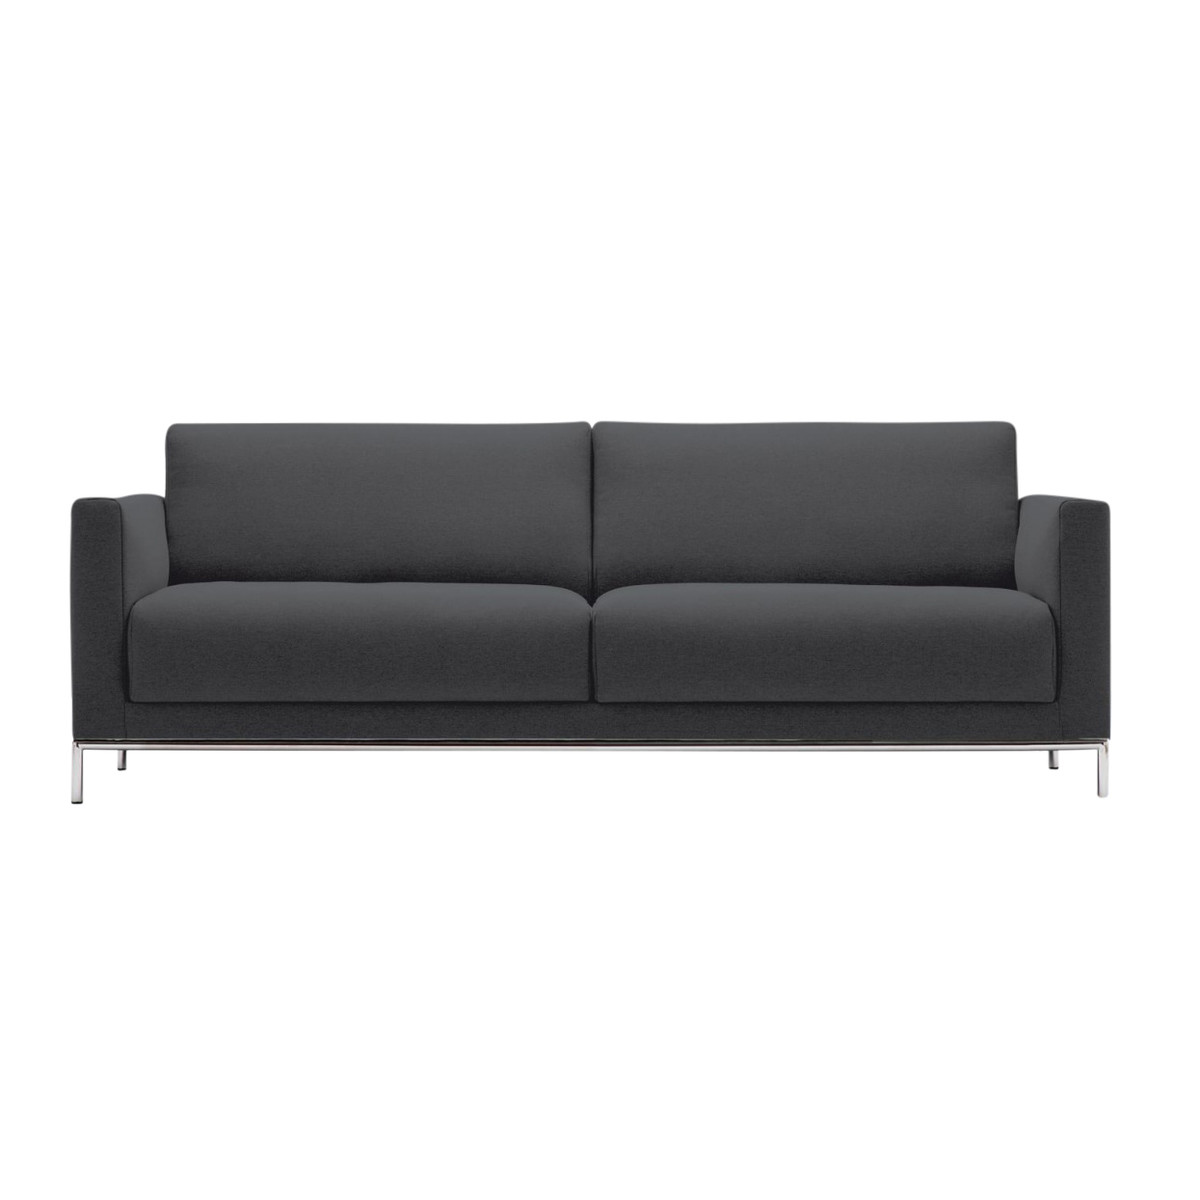 rolf benz sofa freistil. Black Bedroom Furniture Sets. Home Design Ideas